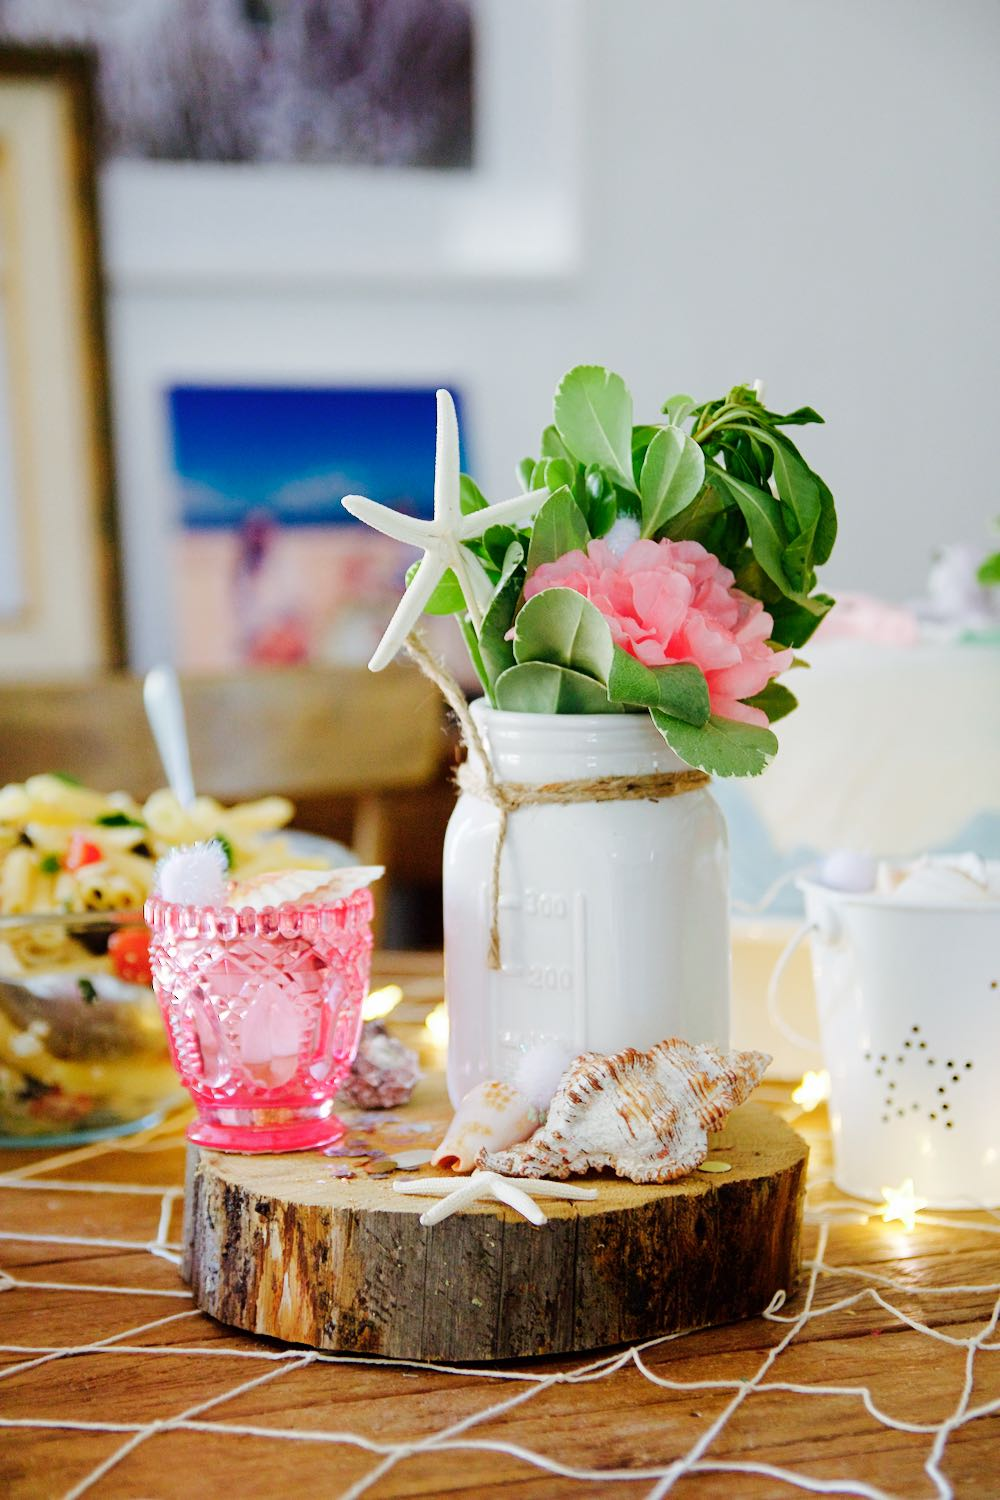 Decorations for a chic and elegant little girl's birthday party